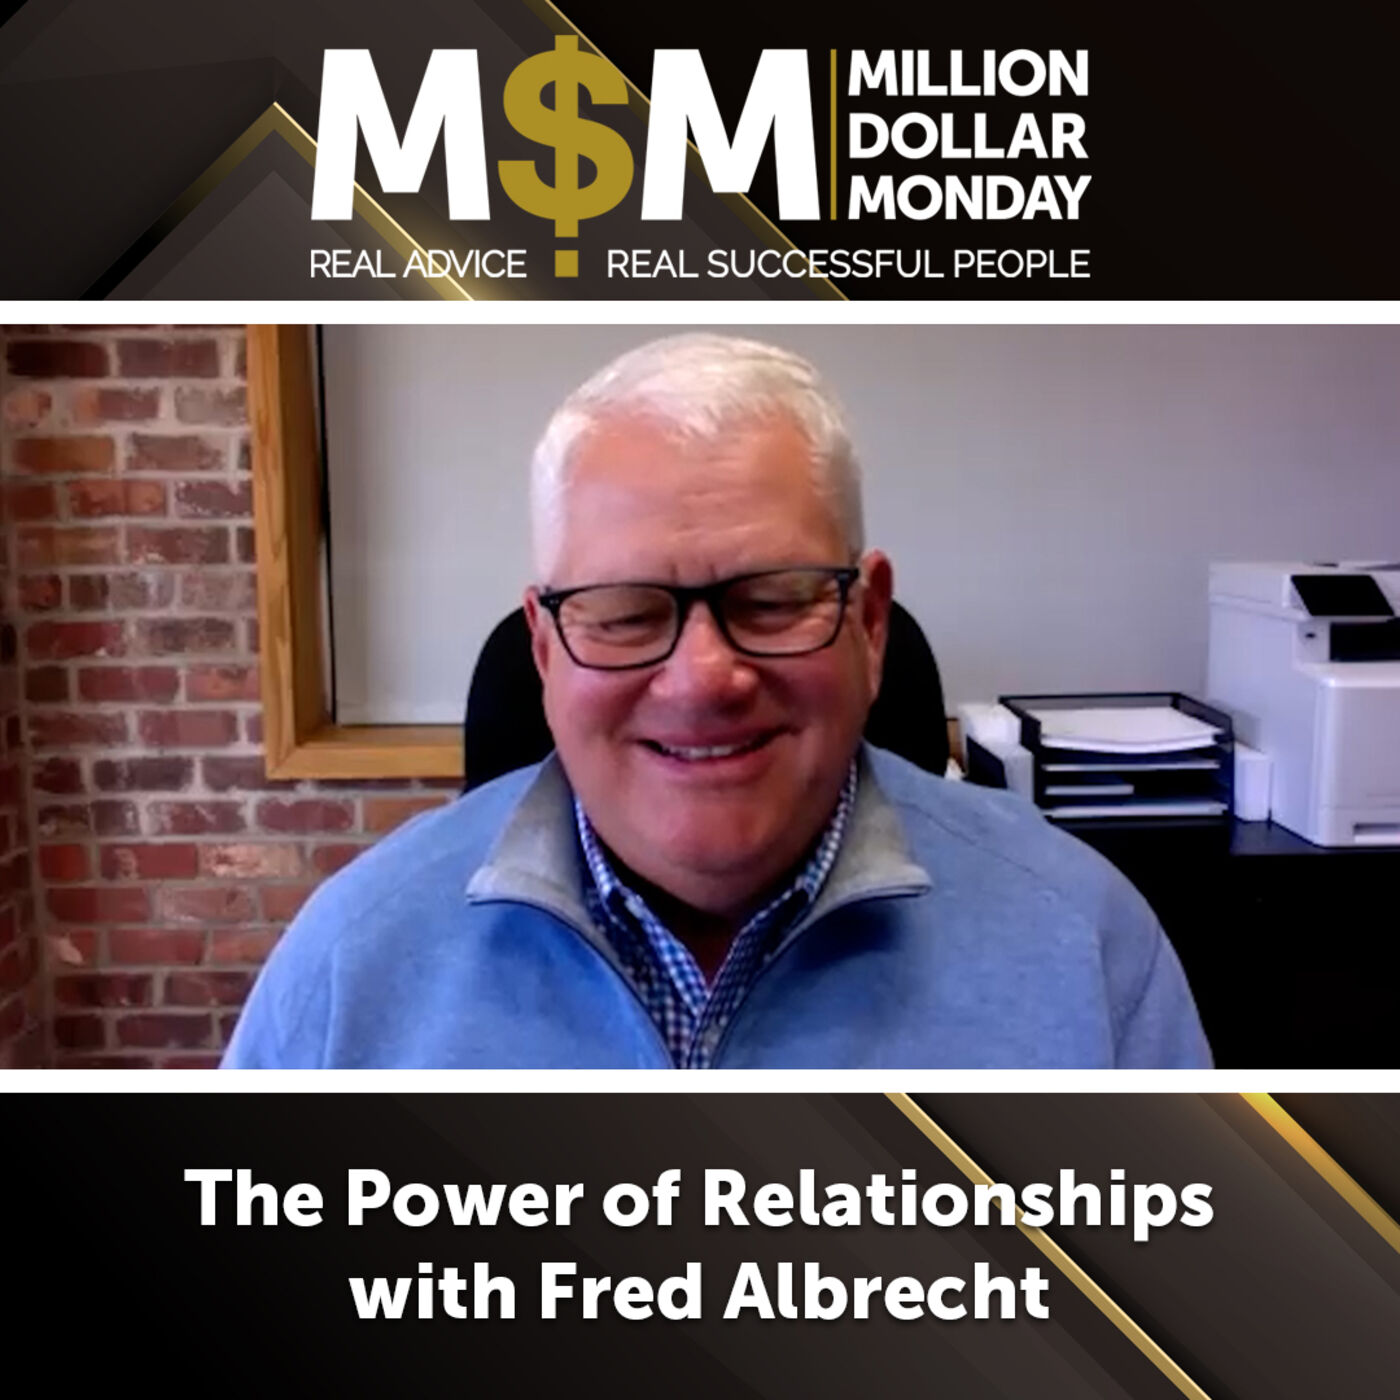 The Power of Relationships with Fred Albrecht